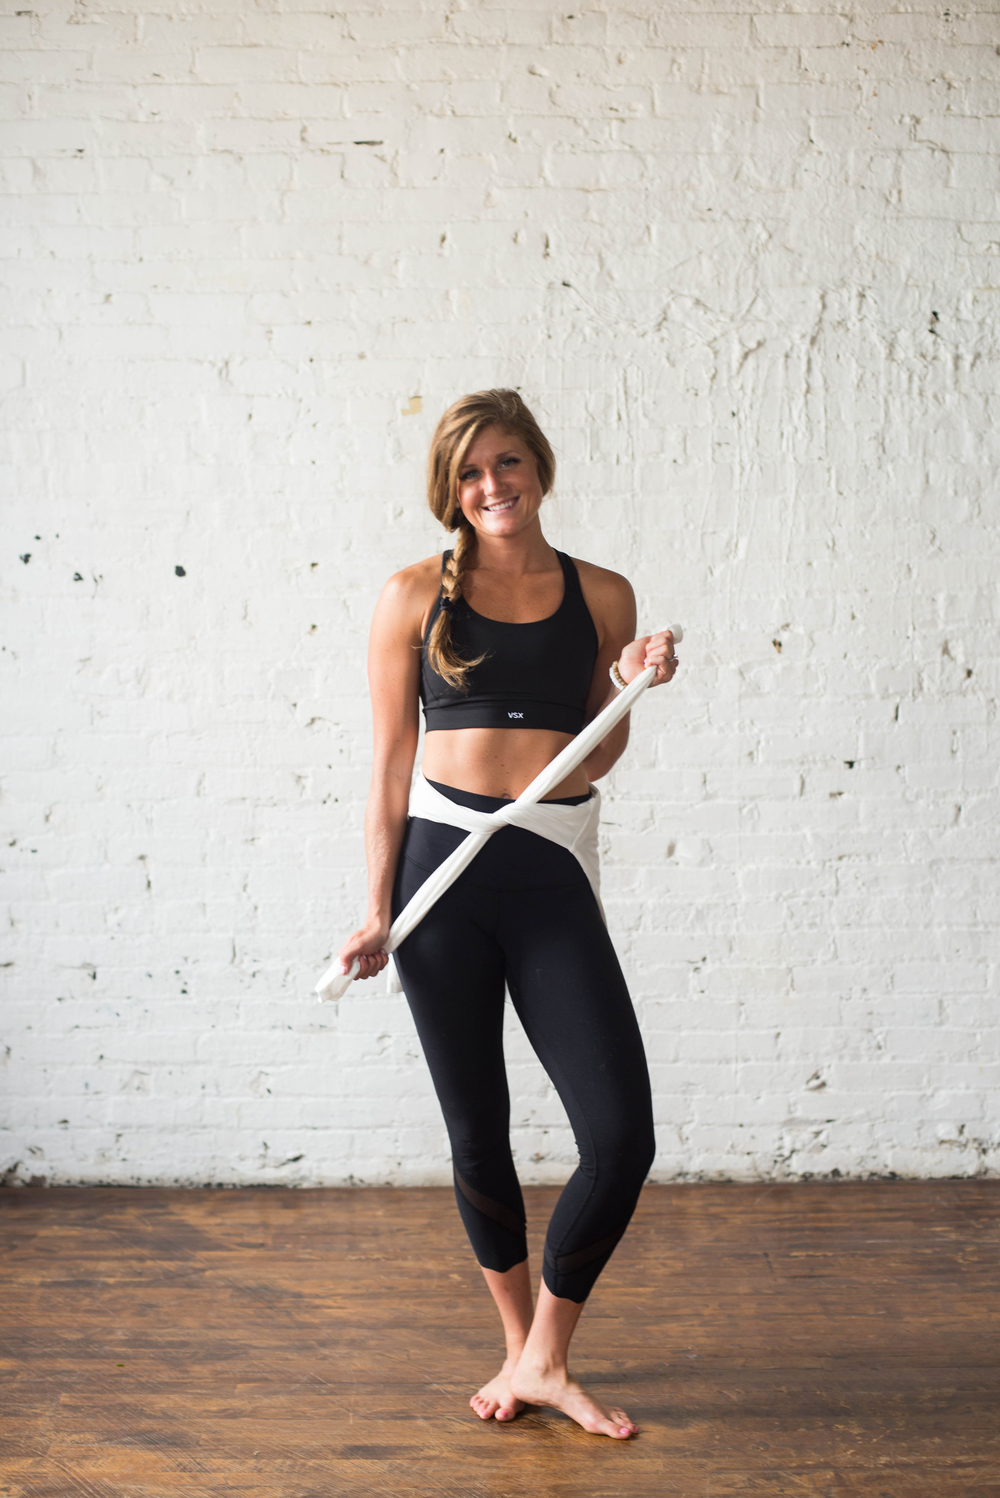 Interview With a Fitness Entrepreneur